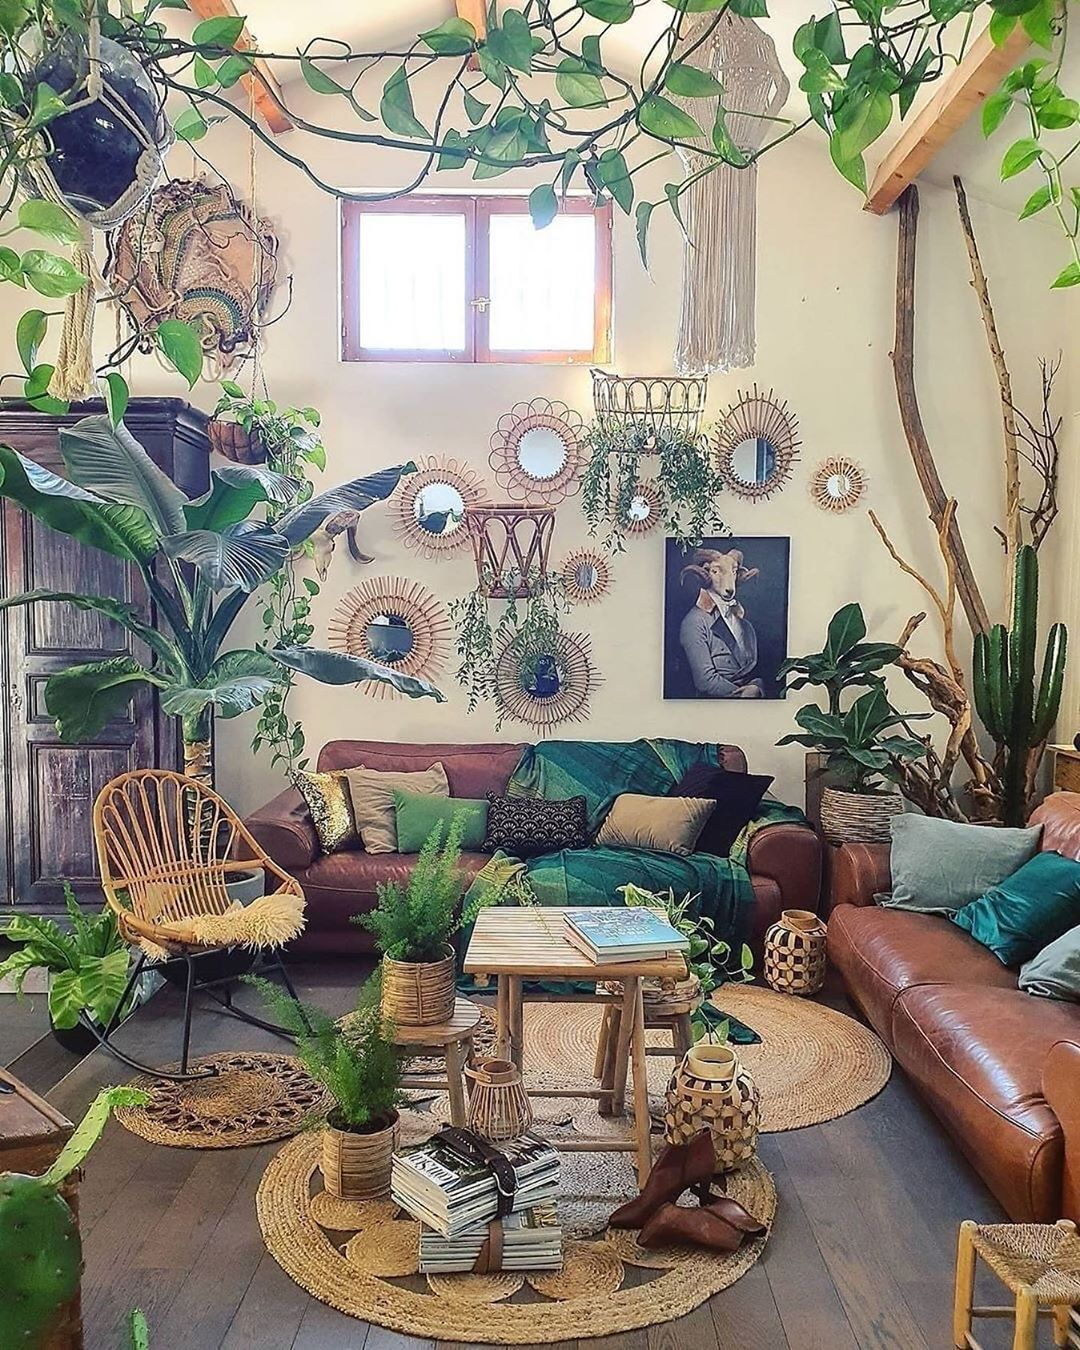 House Plant Community S Instagram Post Grow Plants Save The Earth Urban Jungle Living Room Aesthetic Room Decor Dream Rooms Jungle living room ideas